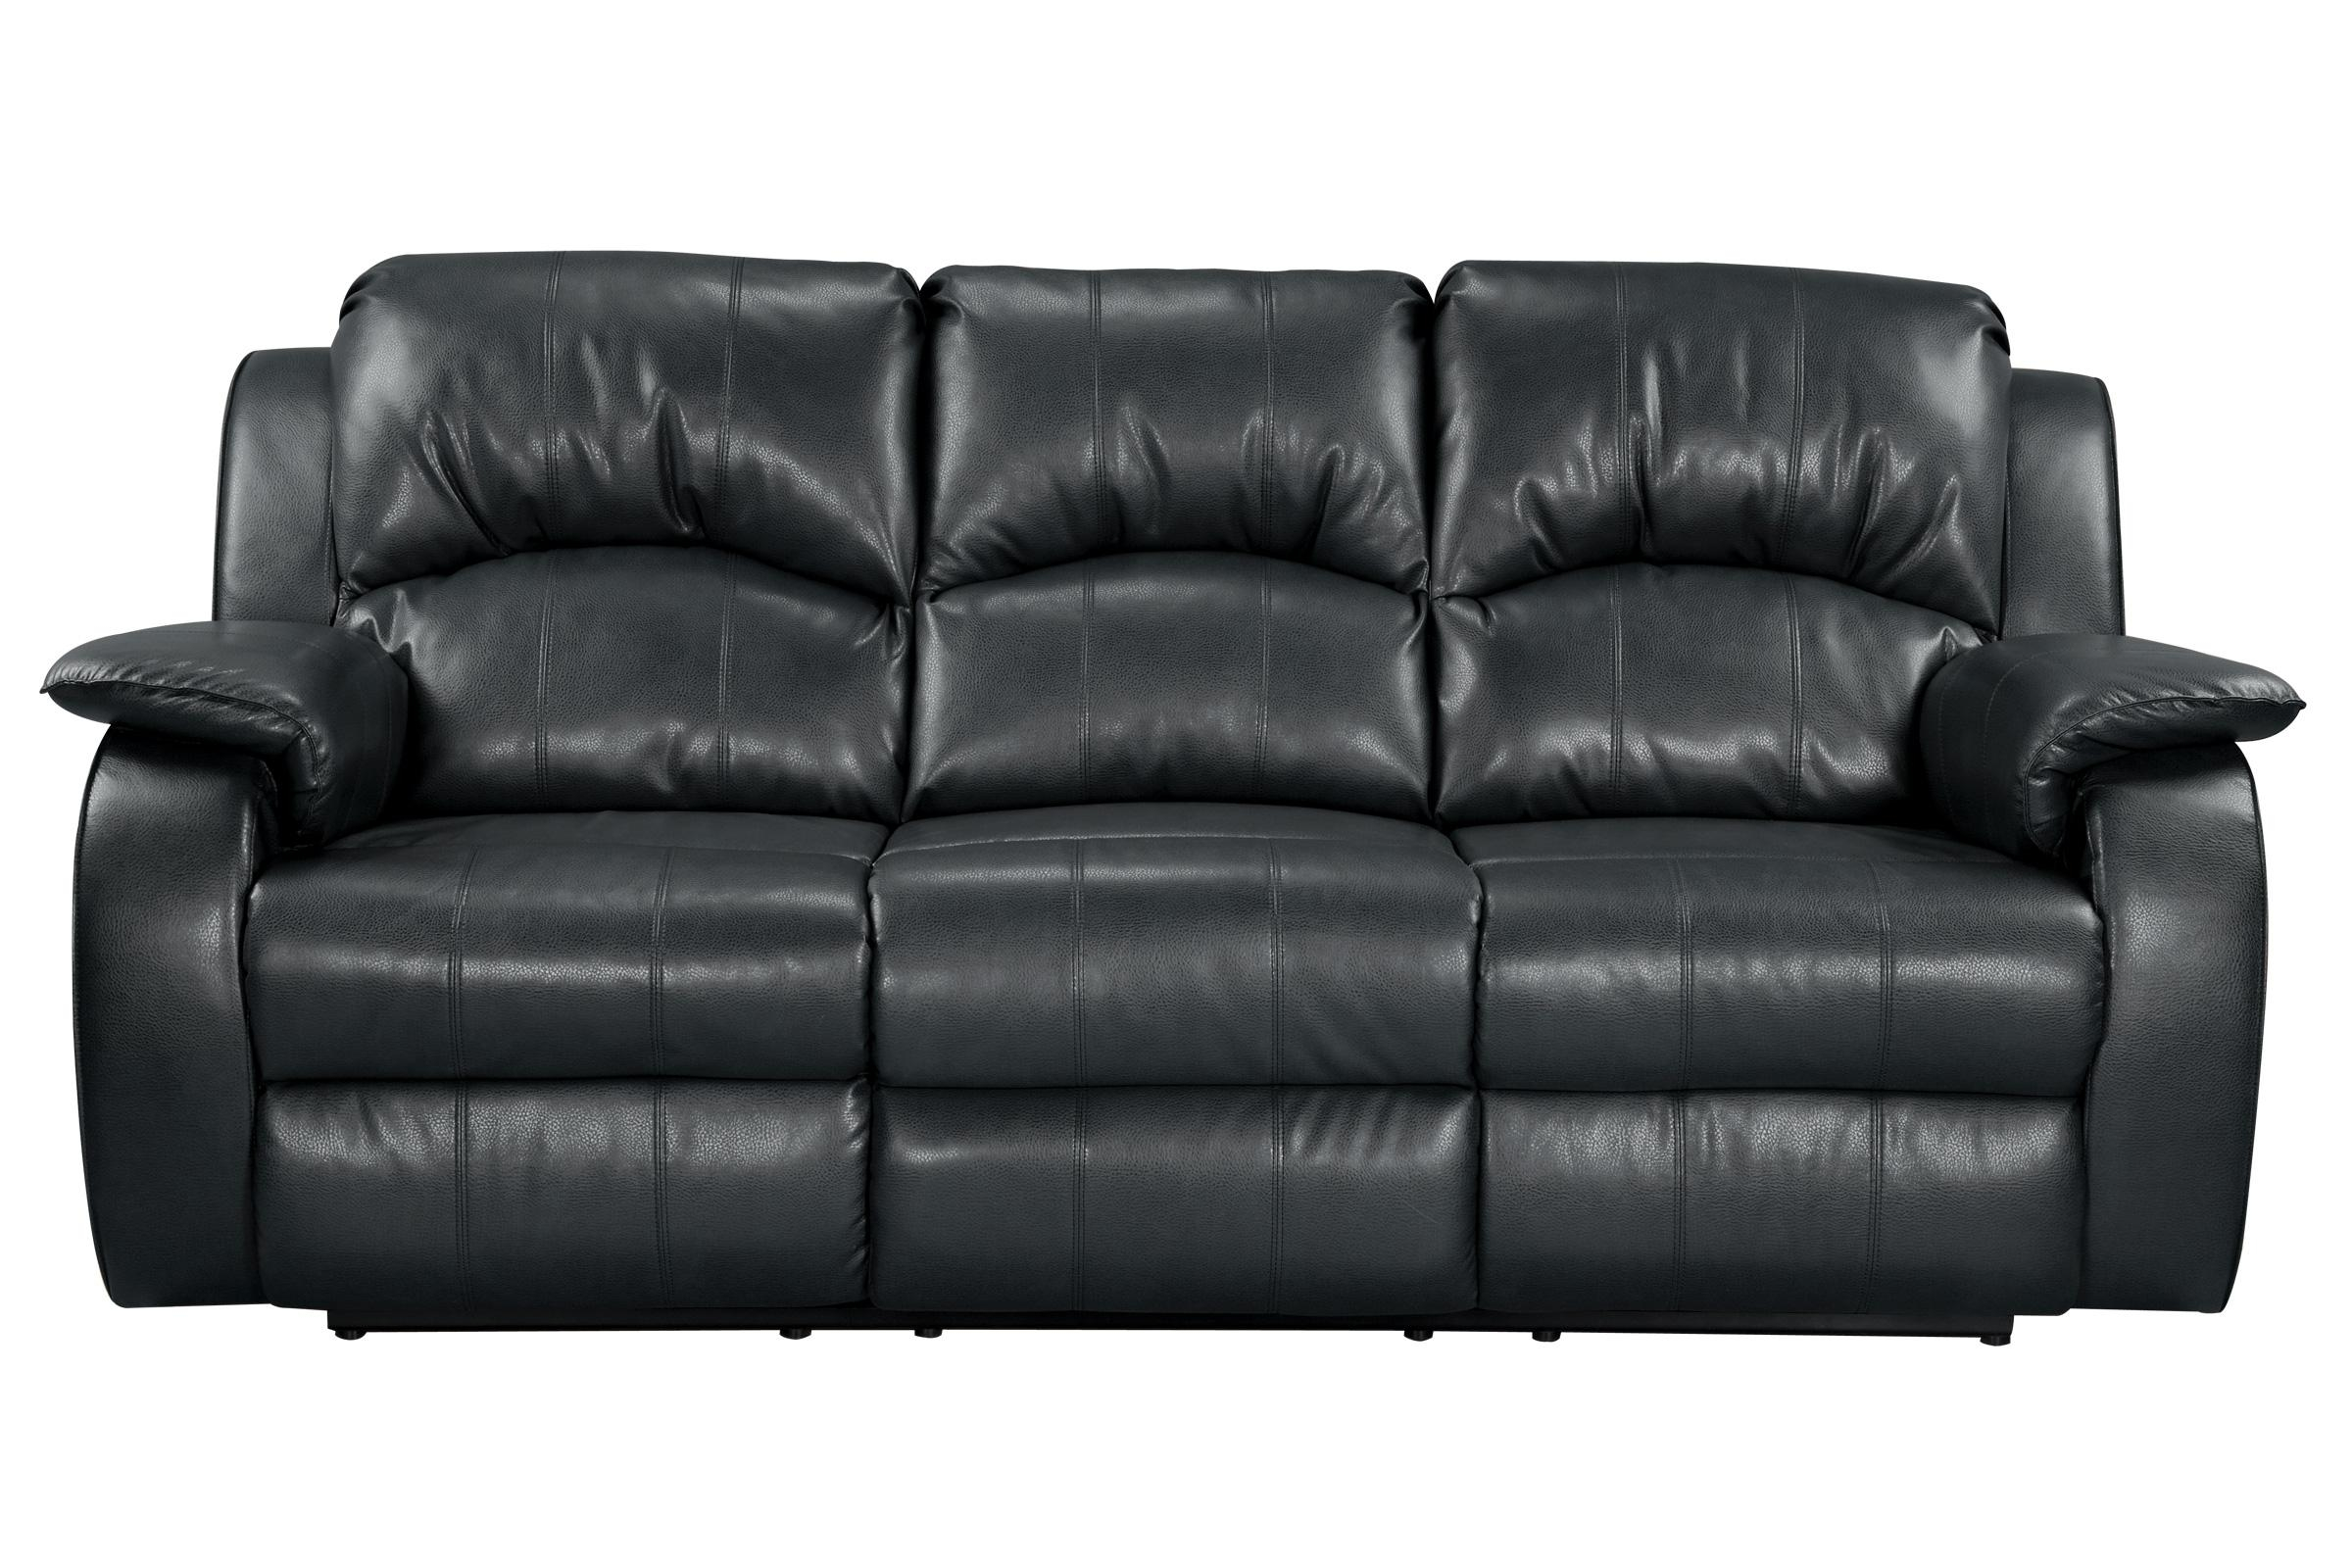 Tahoe Bonded Leather Reclining Sofa For Black And White Sofas (View 20 of 20)